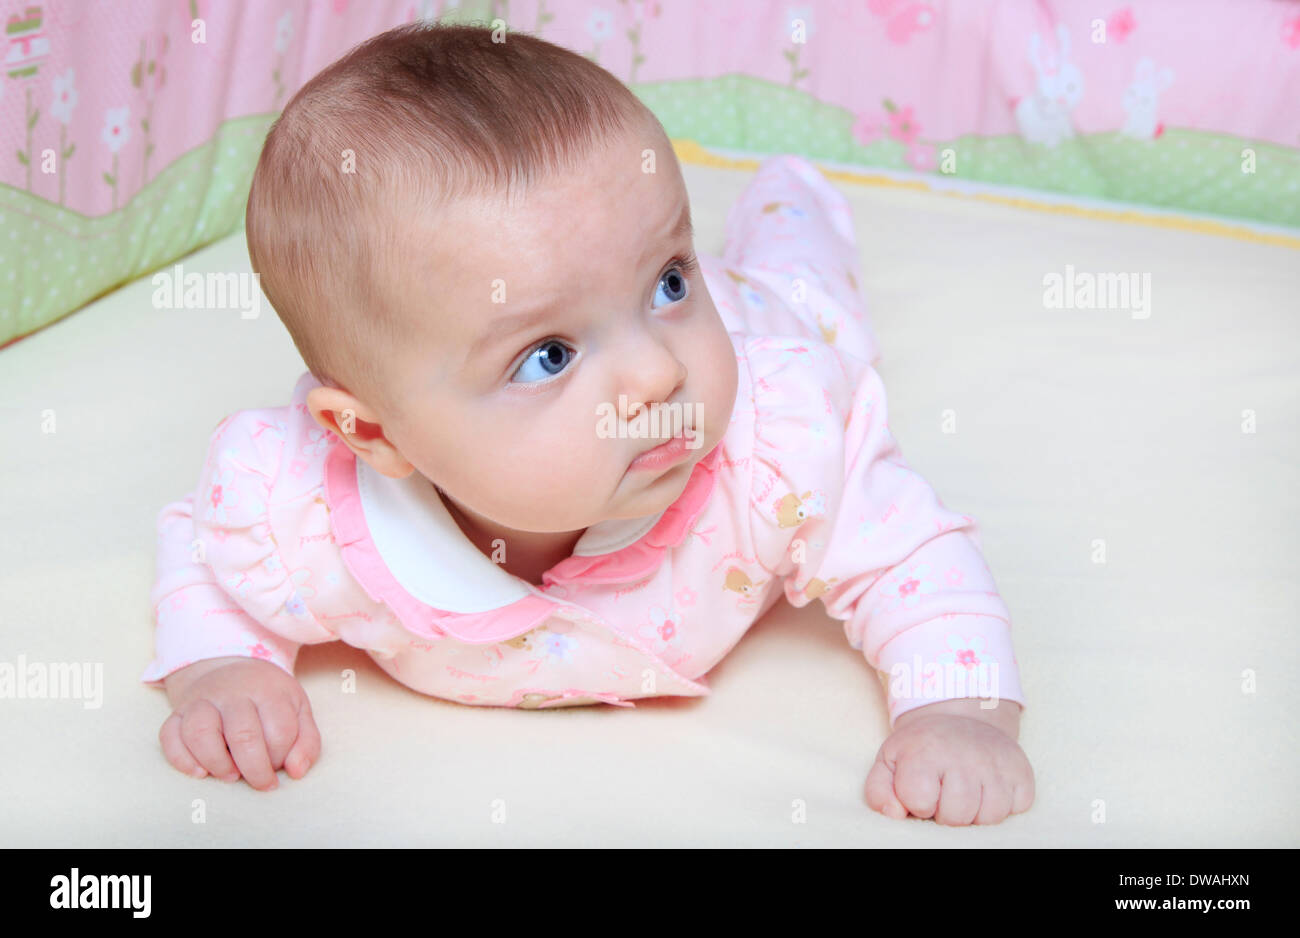 Baby girl toddler in crib - Stock Image